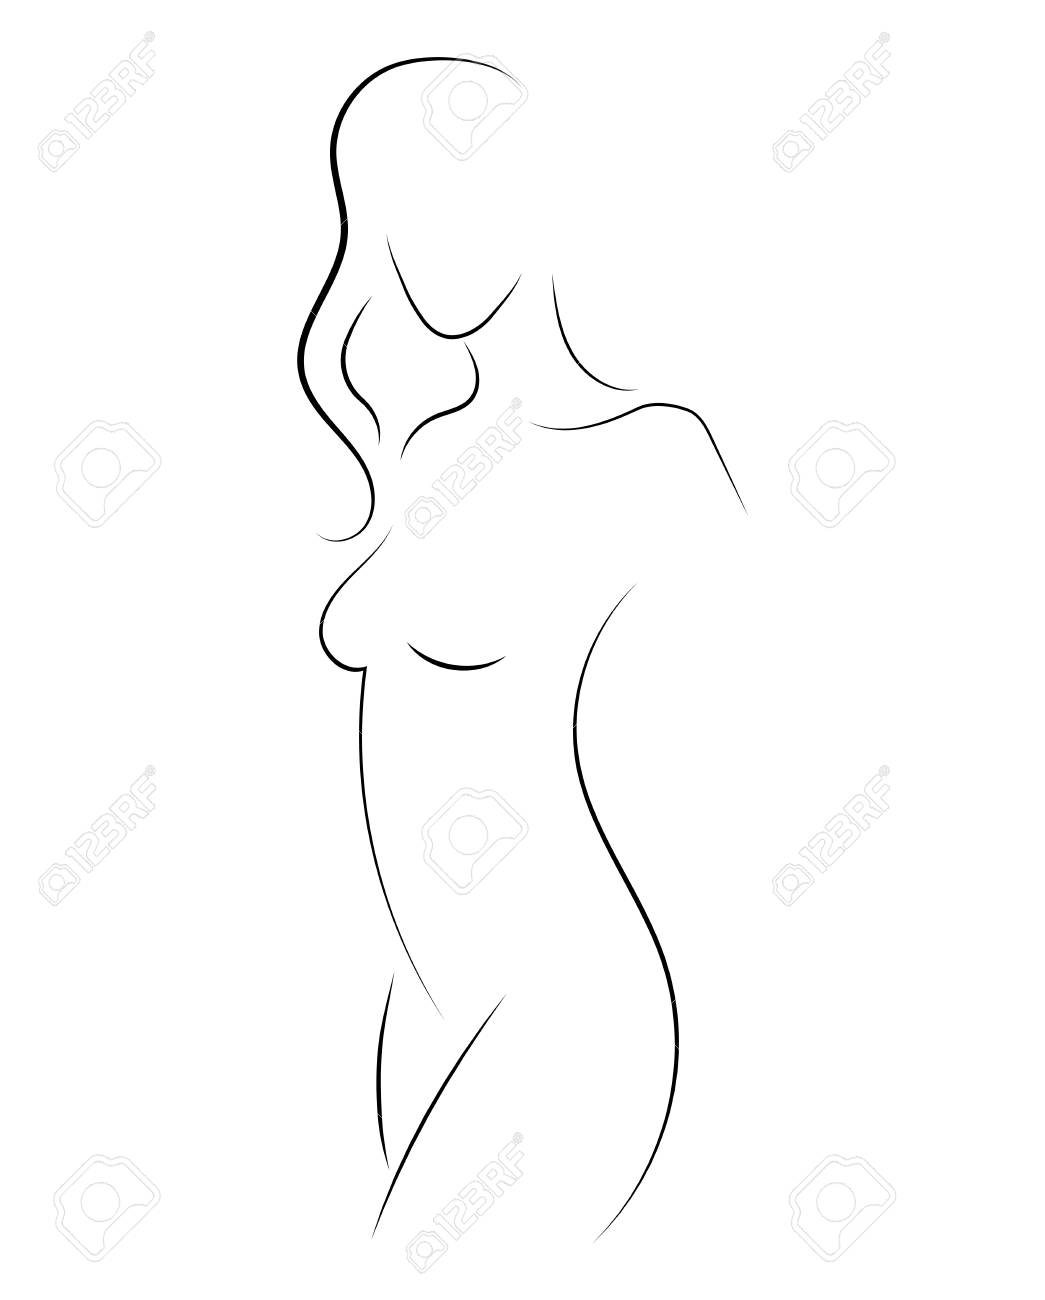 Female figure. Outline of young girl. Stylized slender body. Linear Art. Black and white vector illustration. Contour of a slender figure. - 109077331